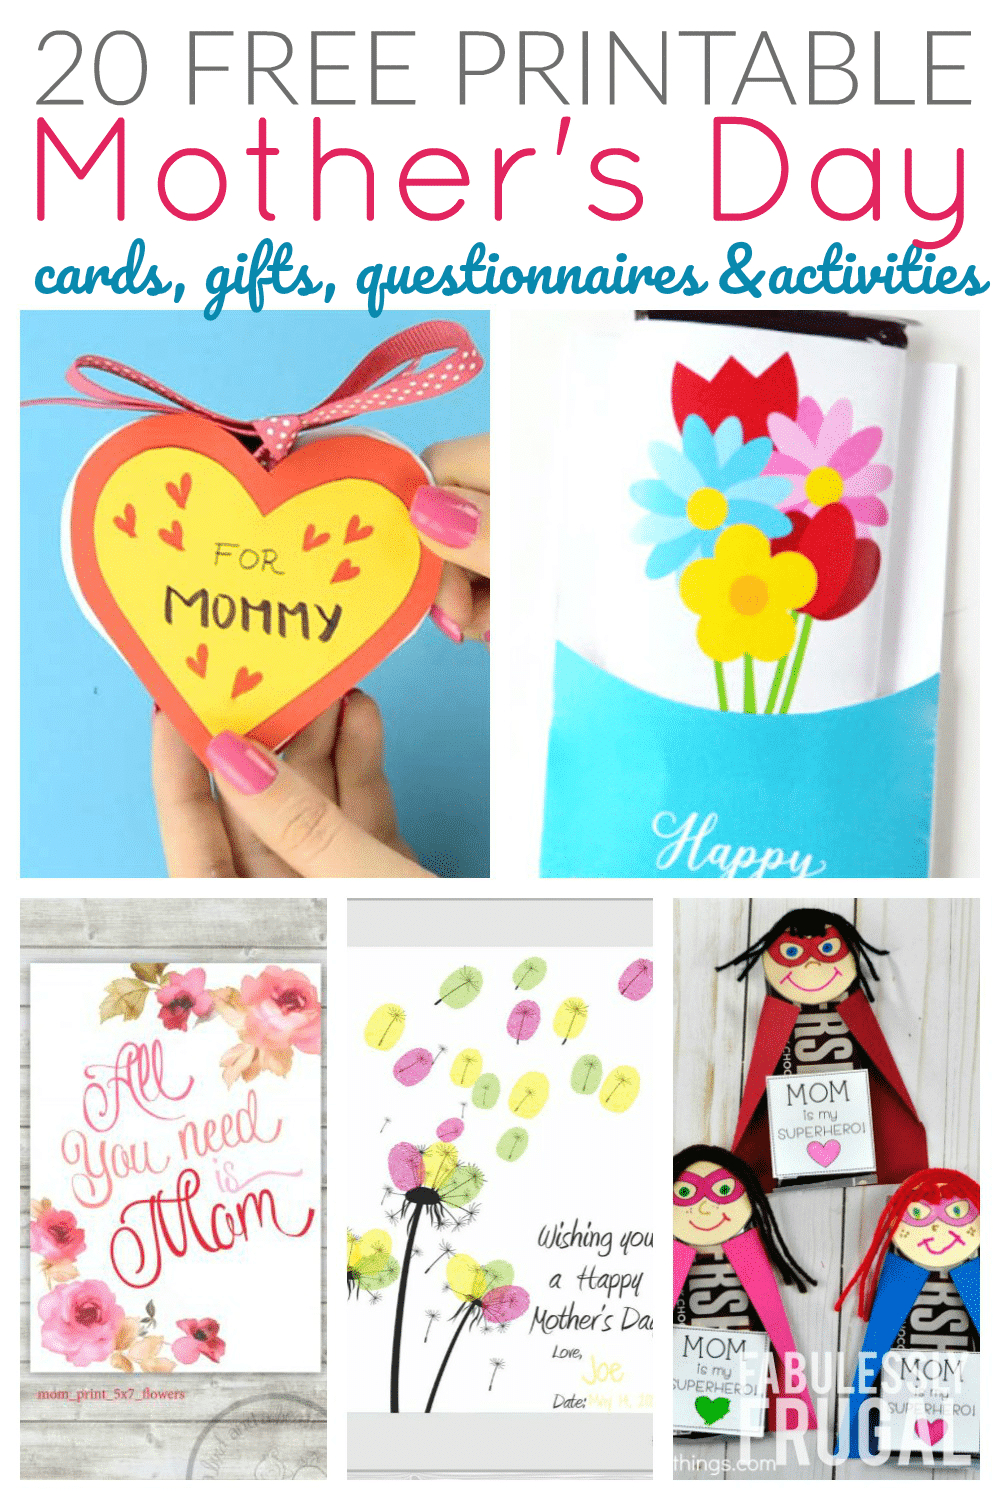 20 Free Printable Mother's Day Cards To Make At Home - Fabulessly Frugal - Make Mother Day Card Online Free Printable